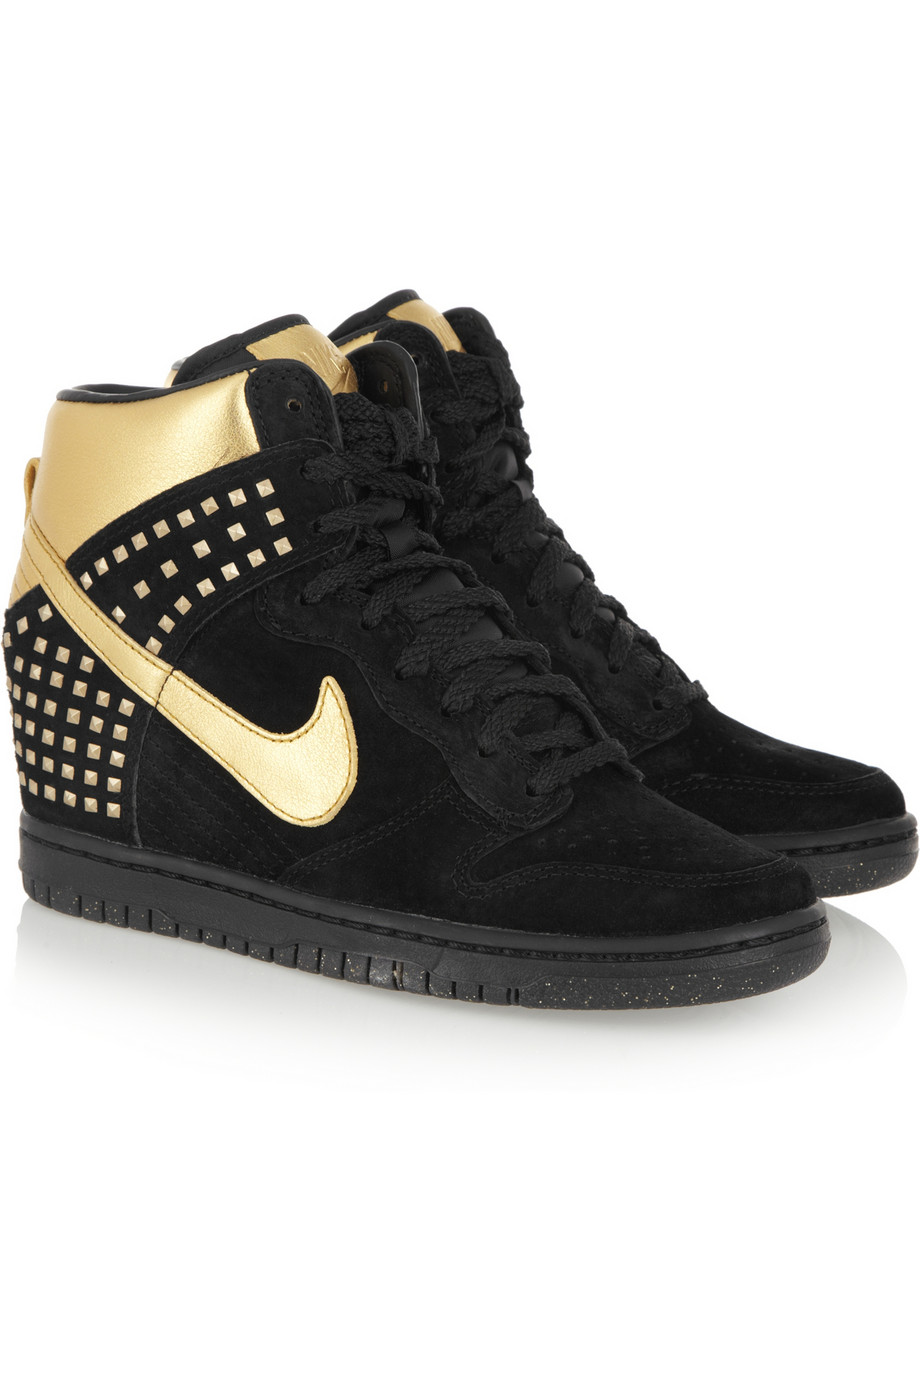 the gallery for gt black and gold wedge sneakers